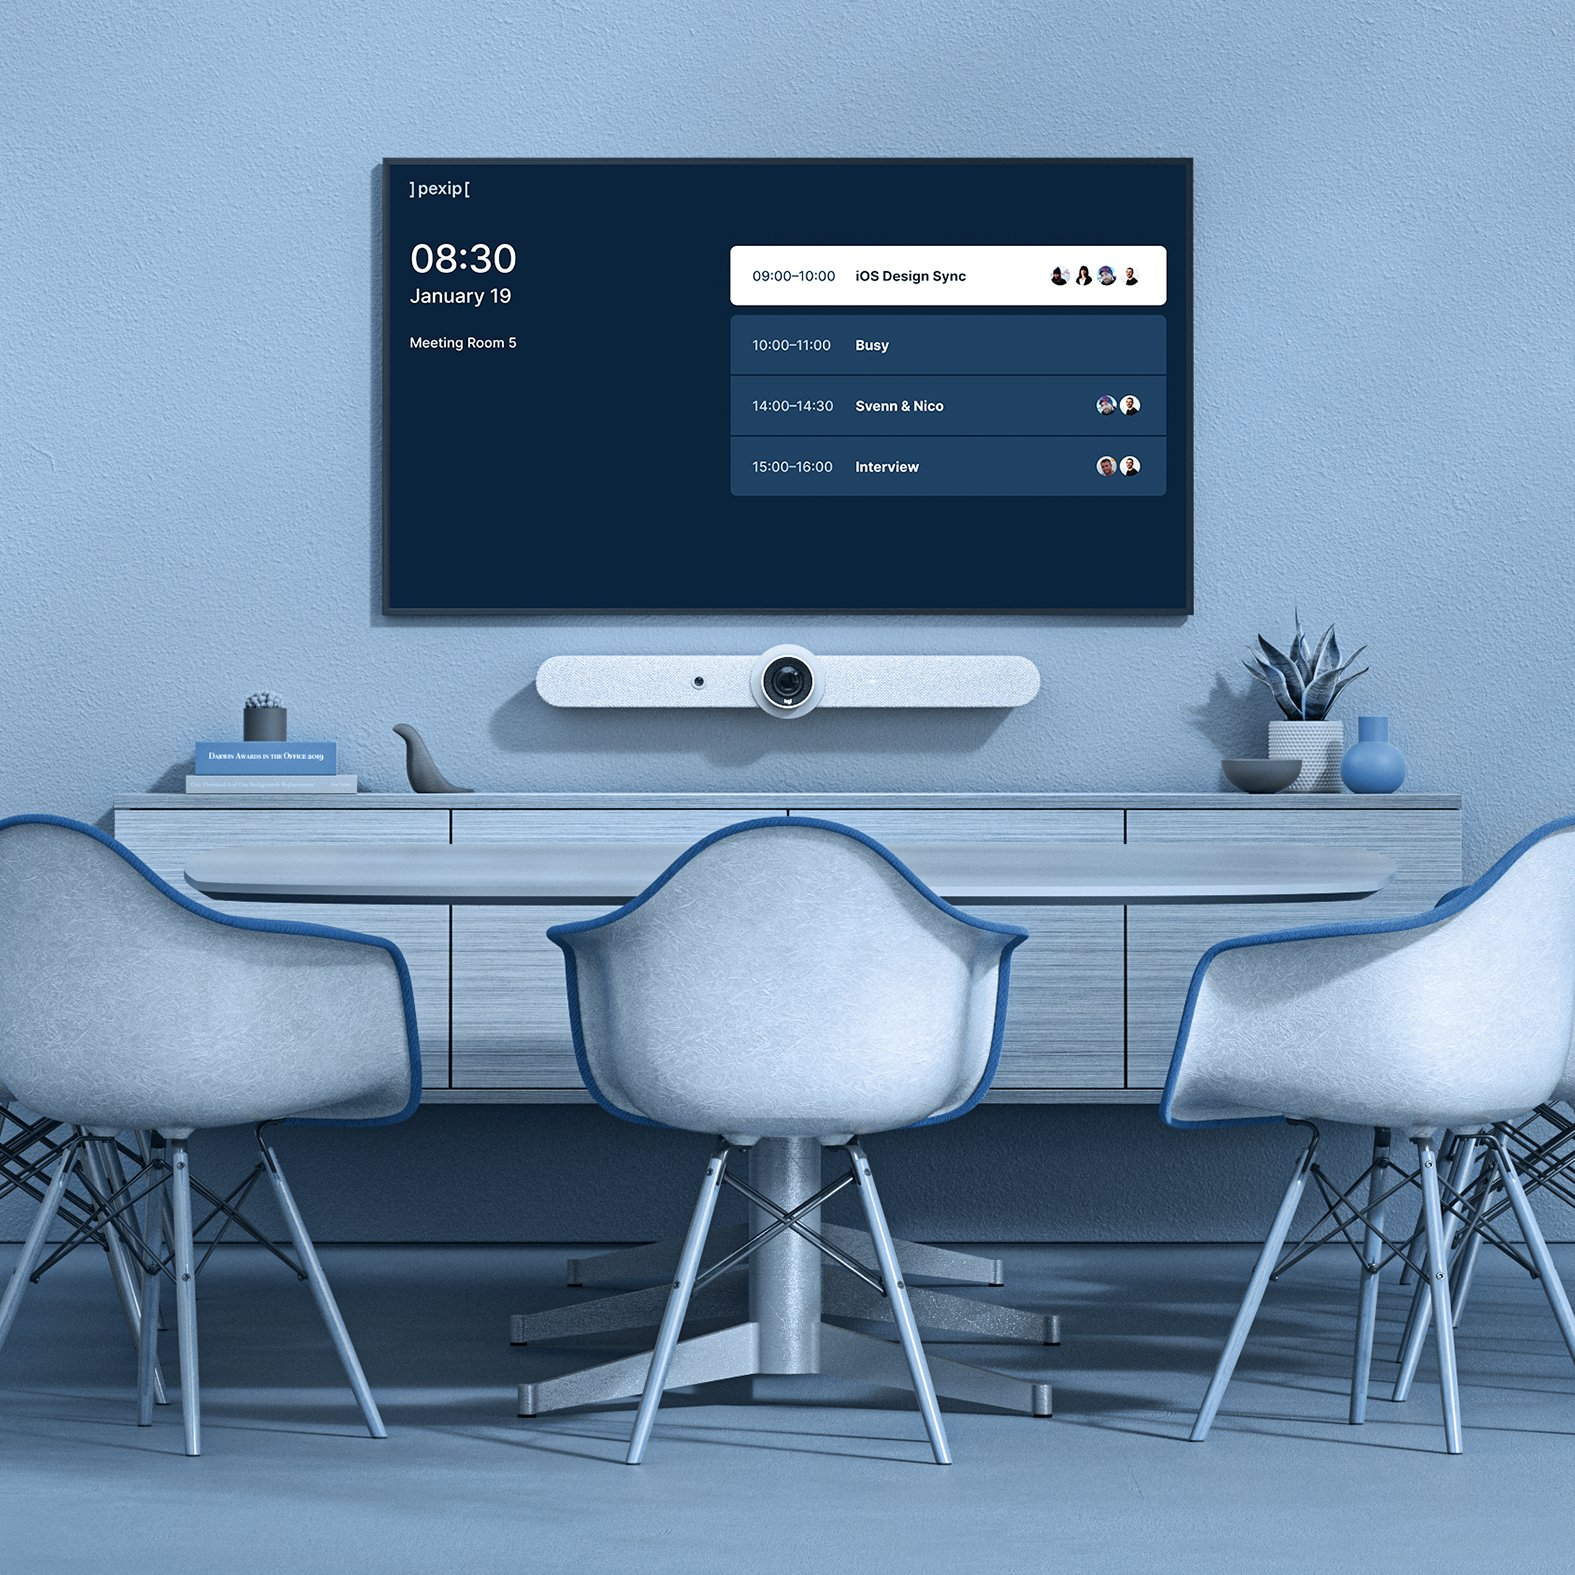 Pexip and Logitech Partnership Brings AI-Powered, Immersive Video Collaboration from the Desktop to the Meeting Room